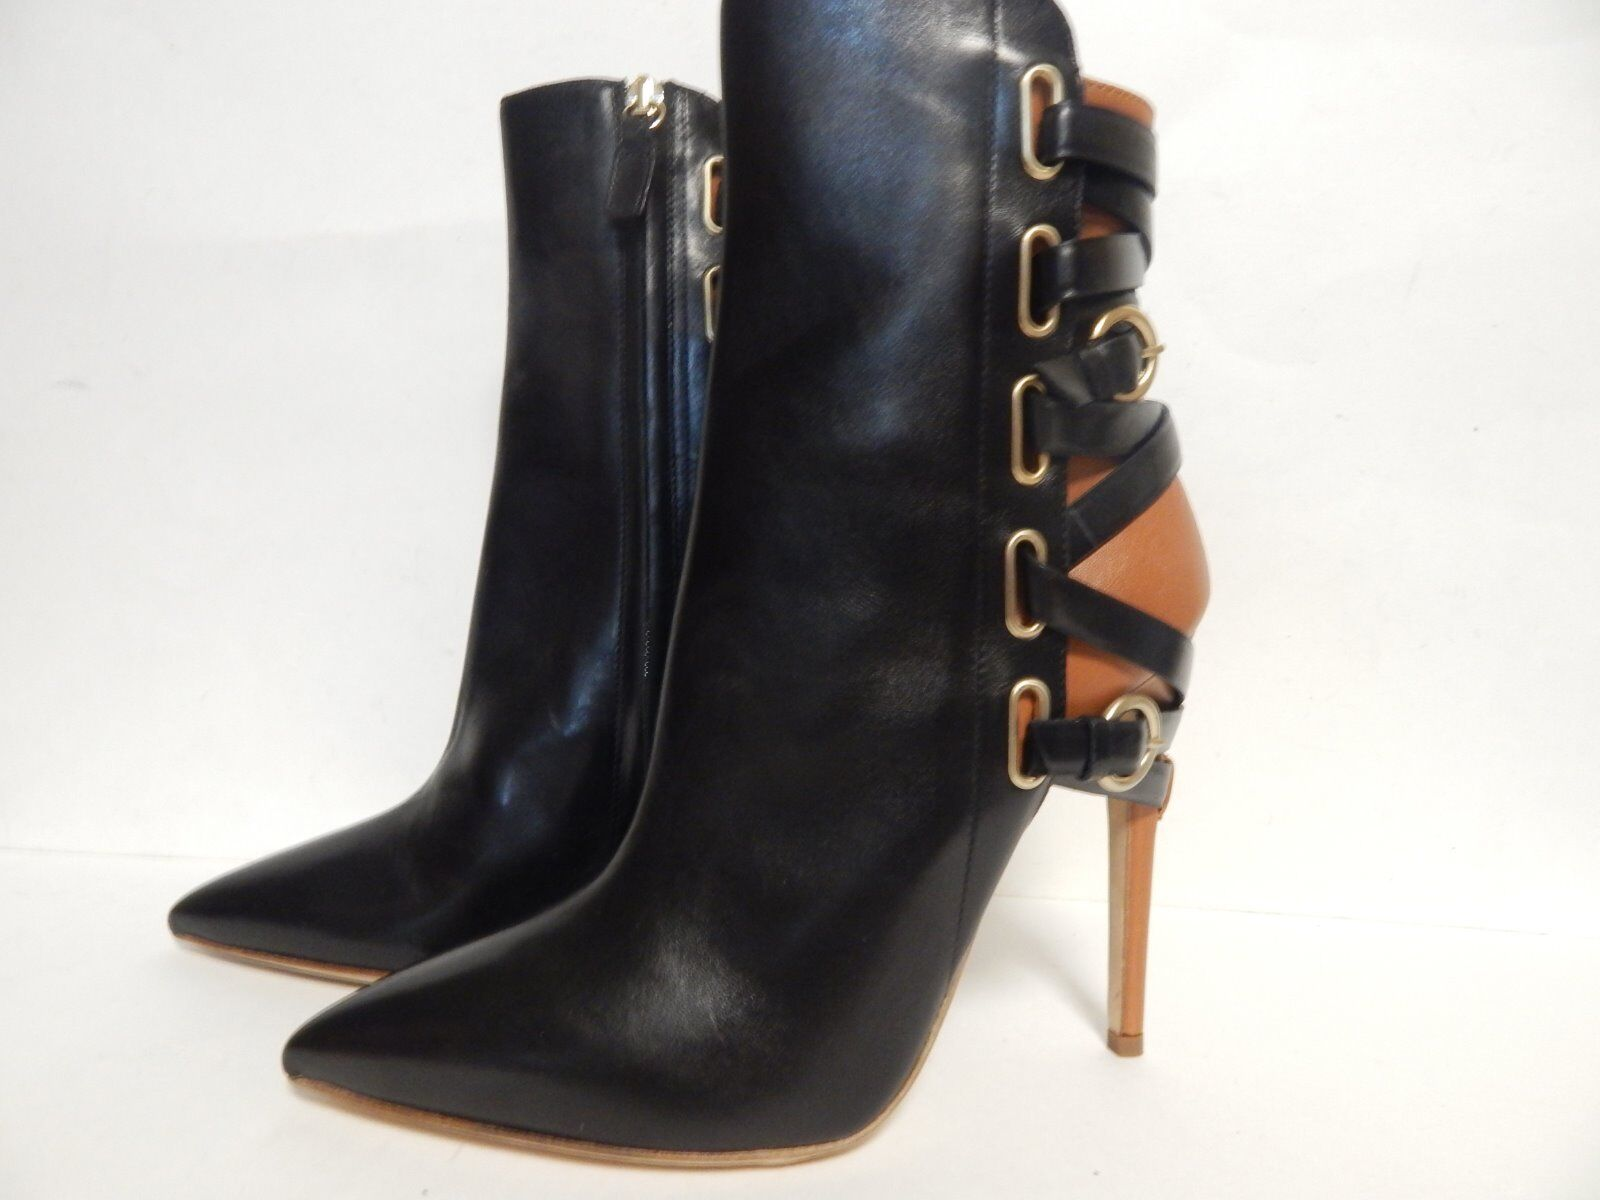 Jerome C. Rousseau Jiro Pointed Toe Ankle Boot Black Calf  New with Box